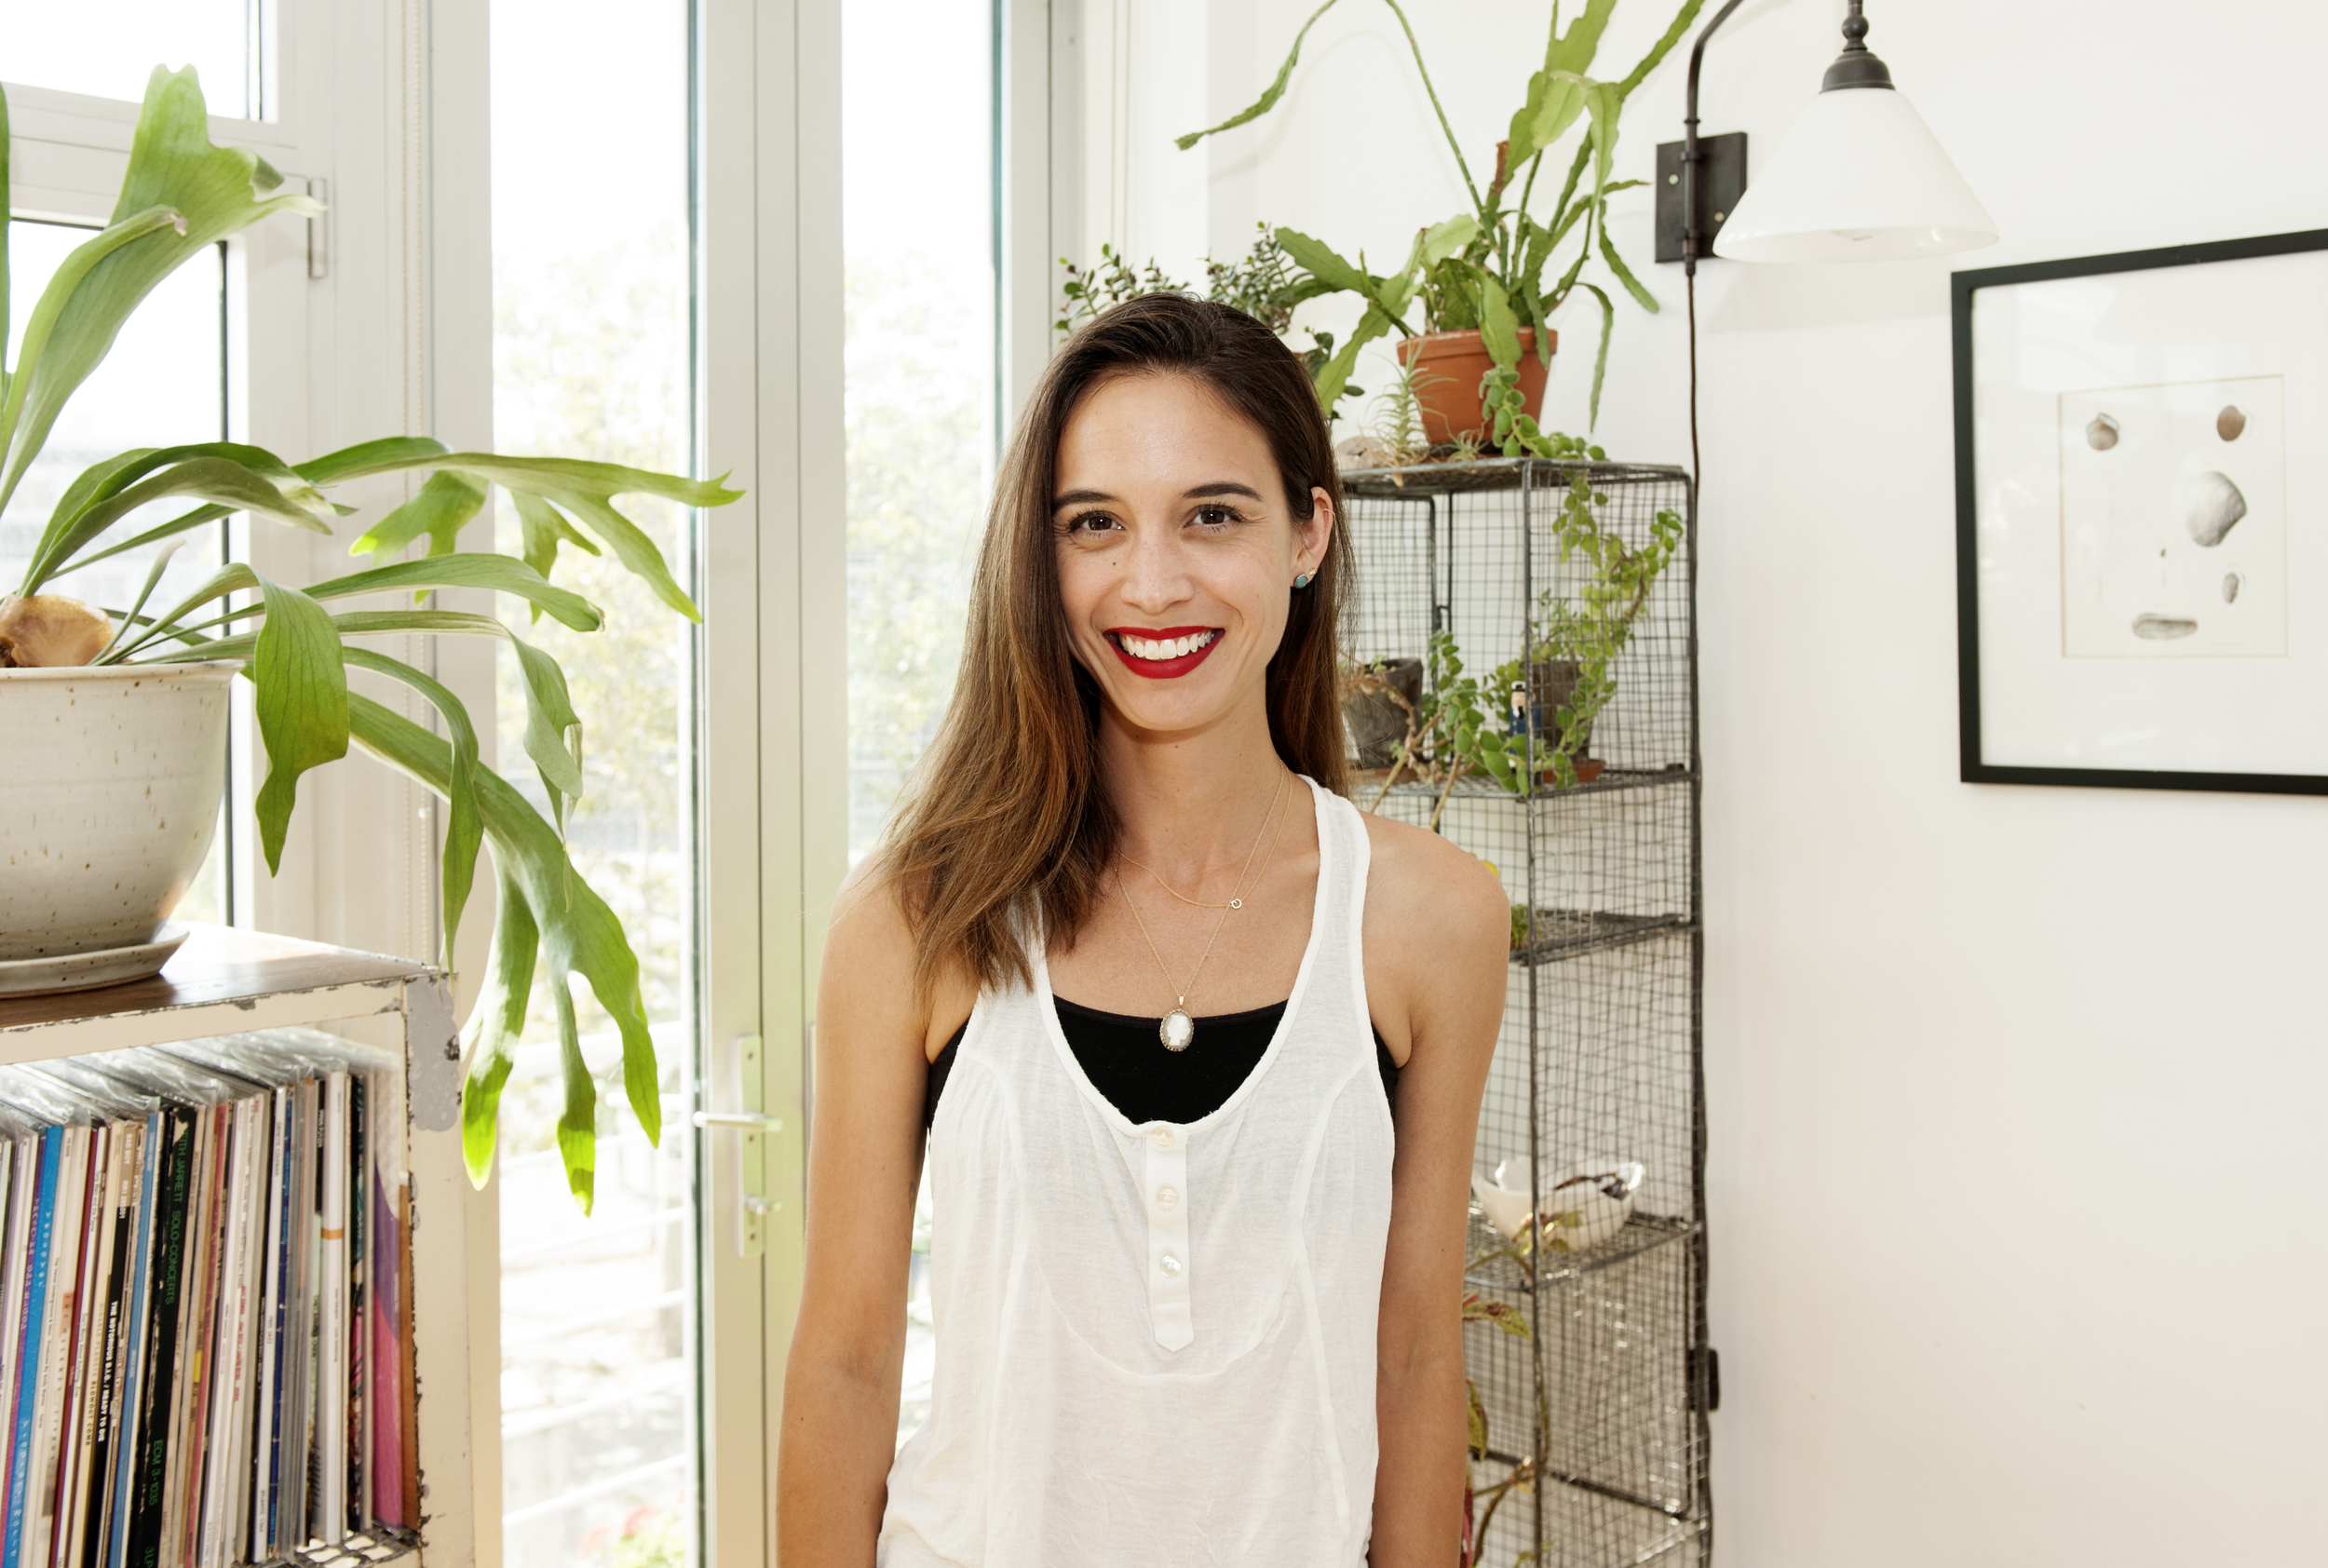 nicole chaszar   Founder of Splendid Spoon, 32, Greenpoint